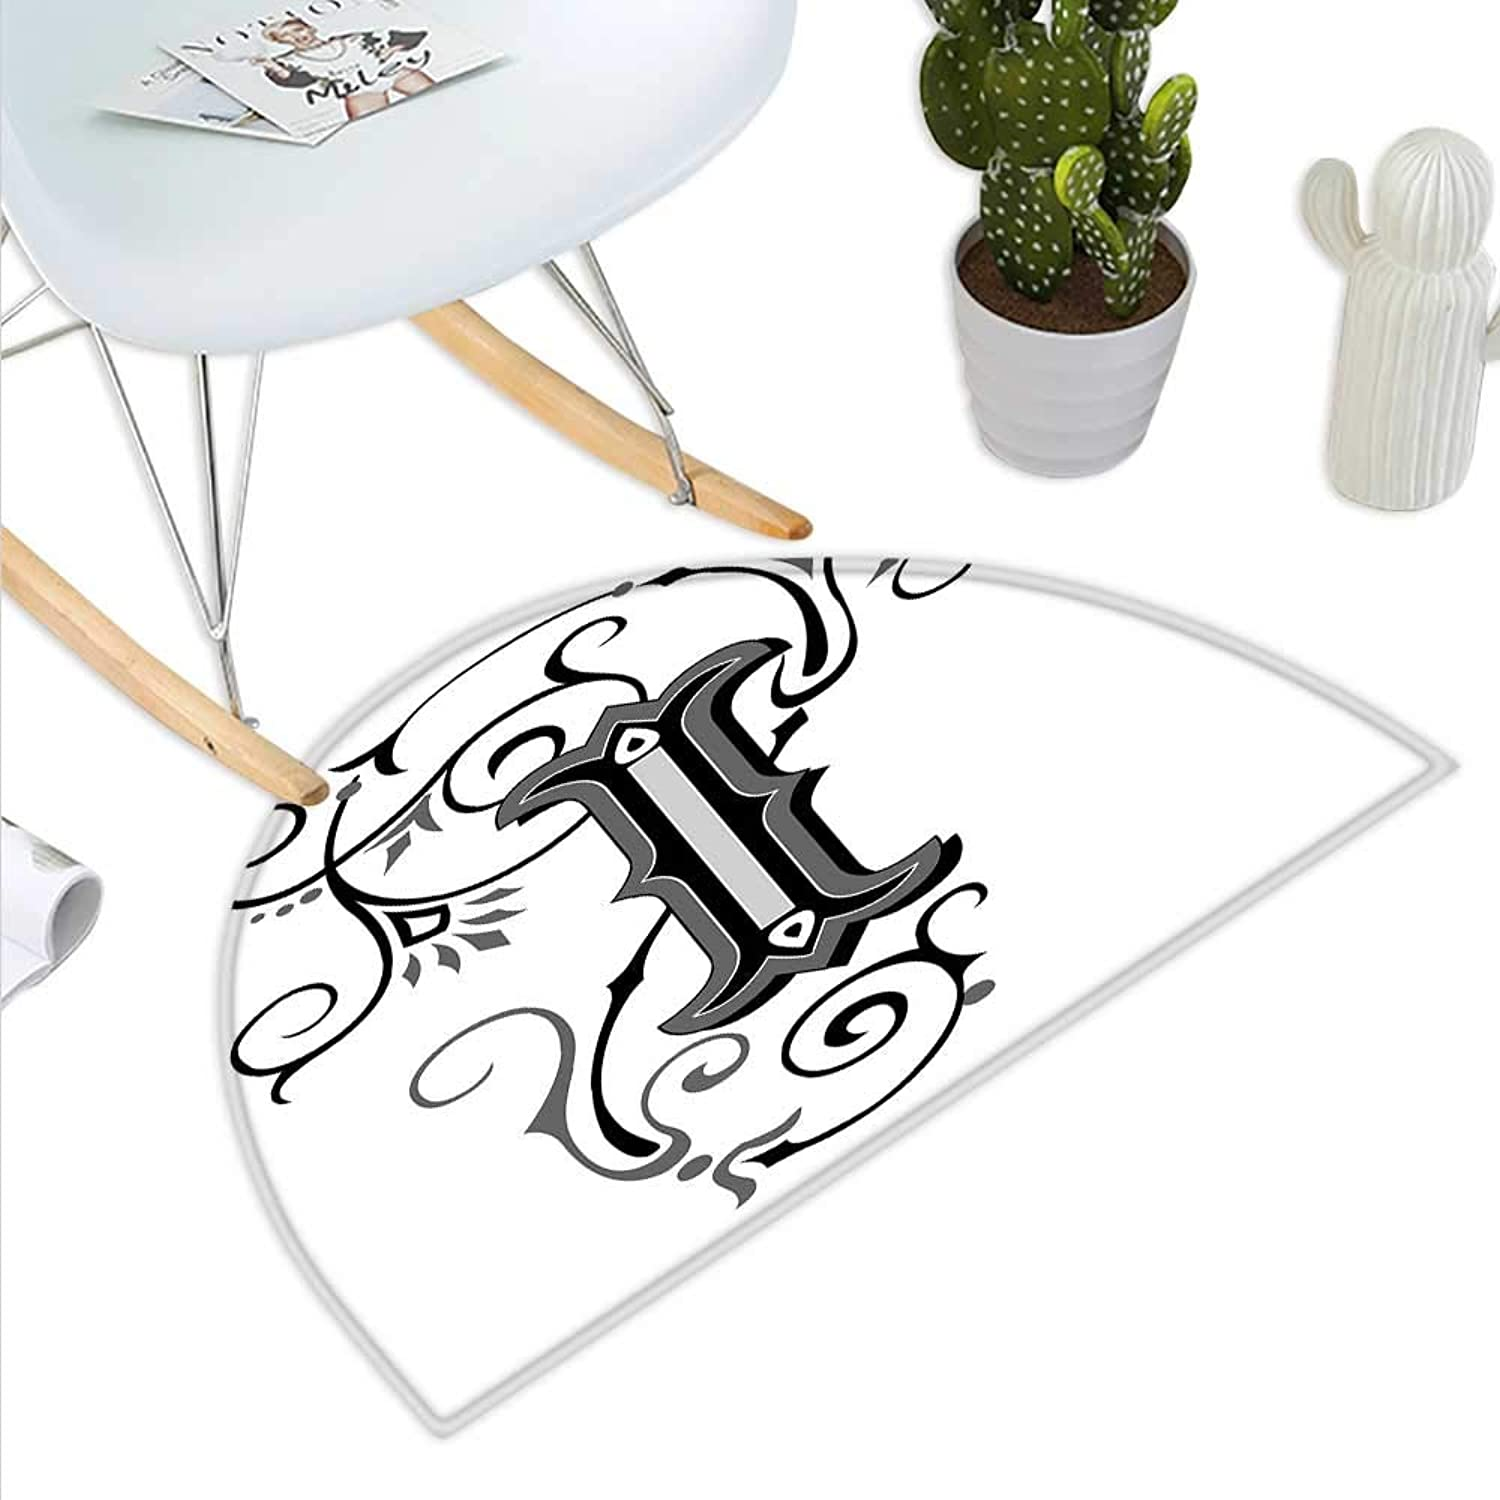 Letter I Semicircle Doormat Capital with Grand Illustrious Design Abstract Elements Shapes Swirls Lines Halfmoon doormats H 39.3  xD 59  Black Grey White